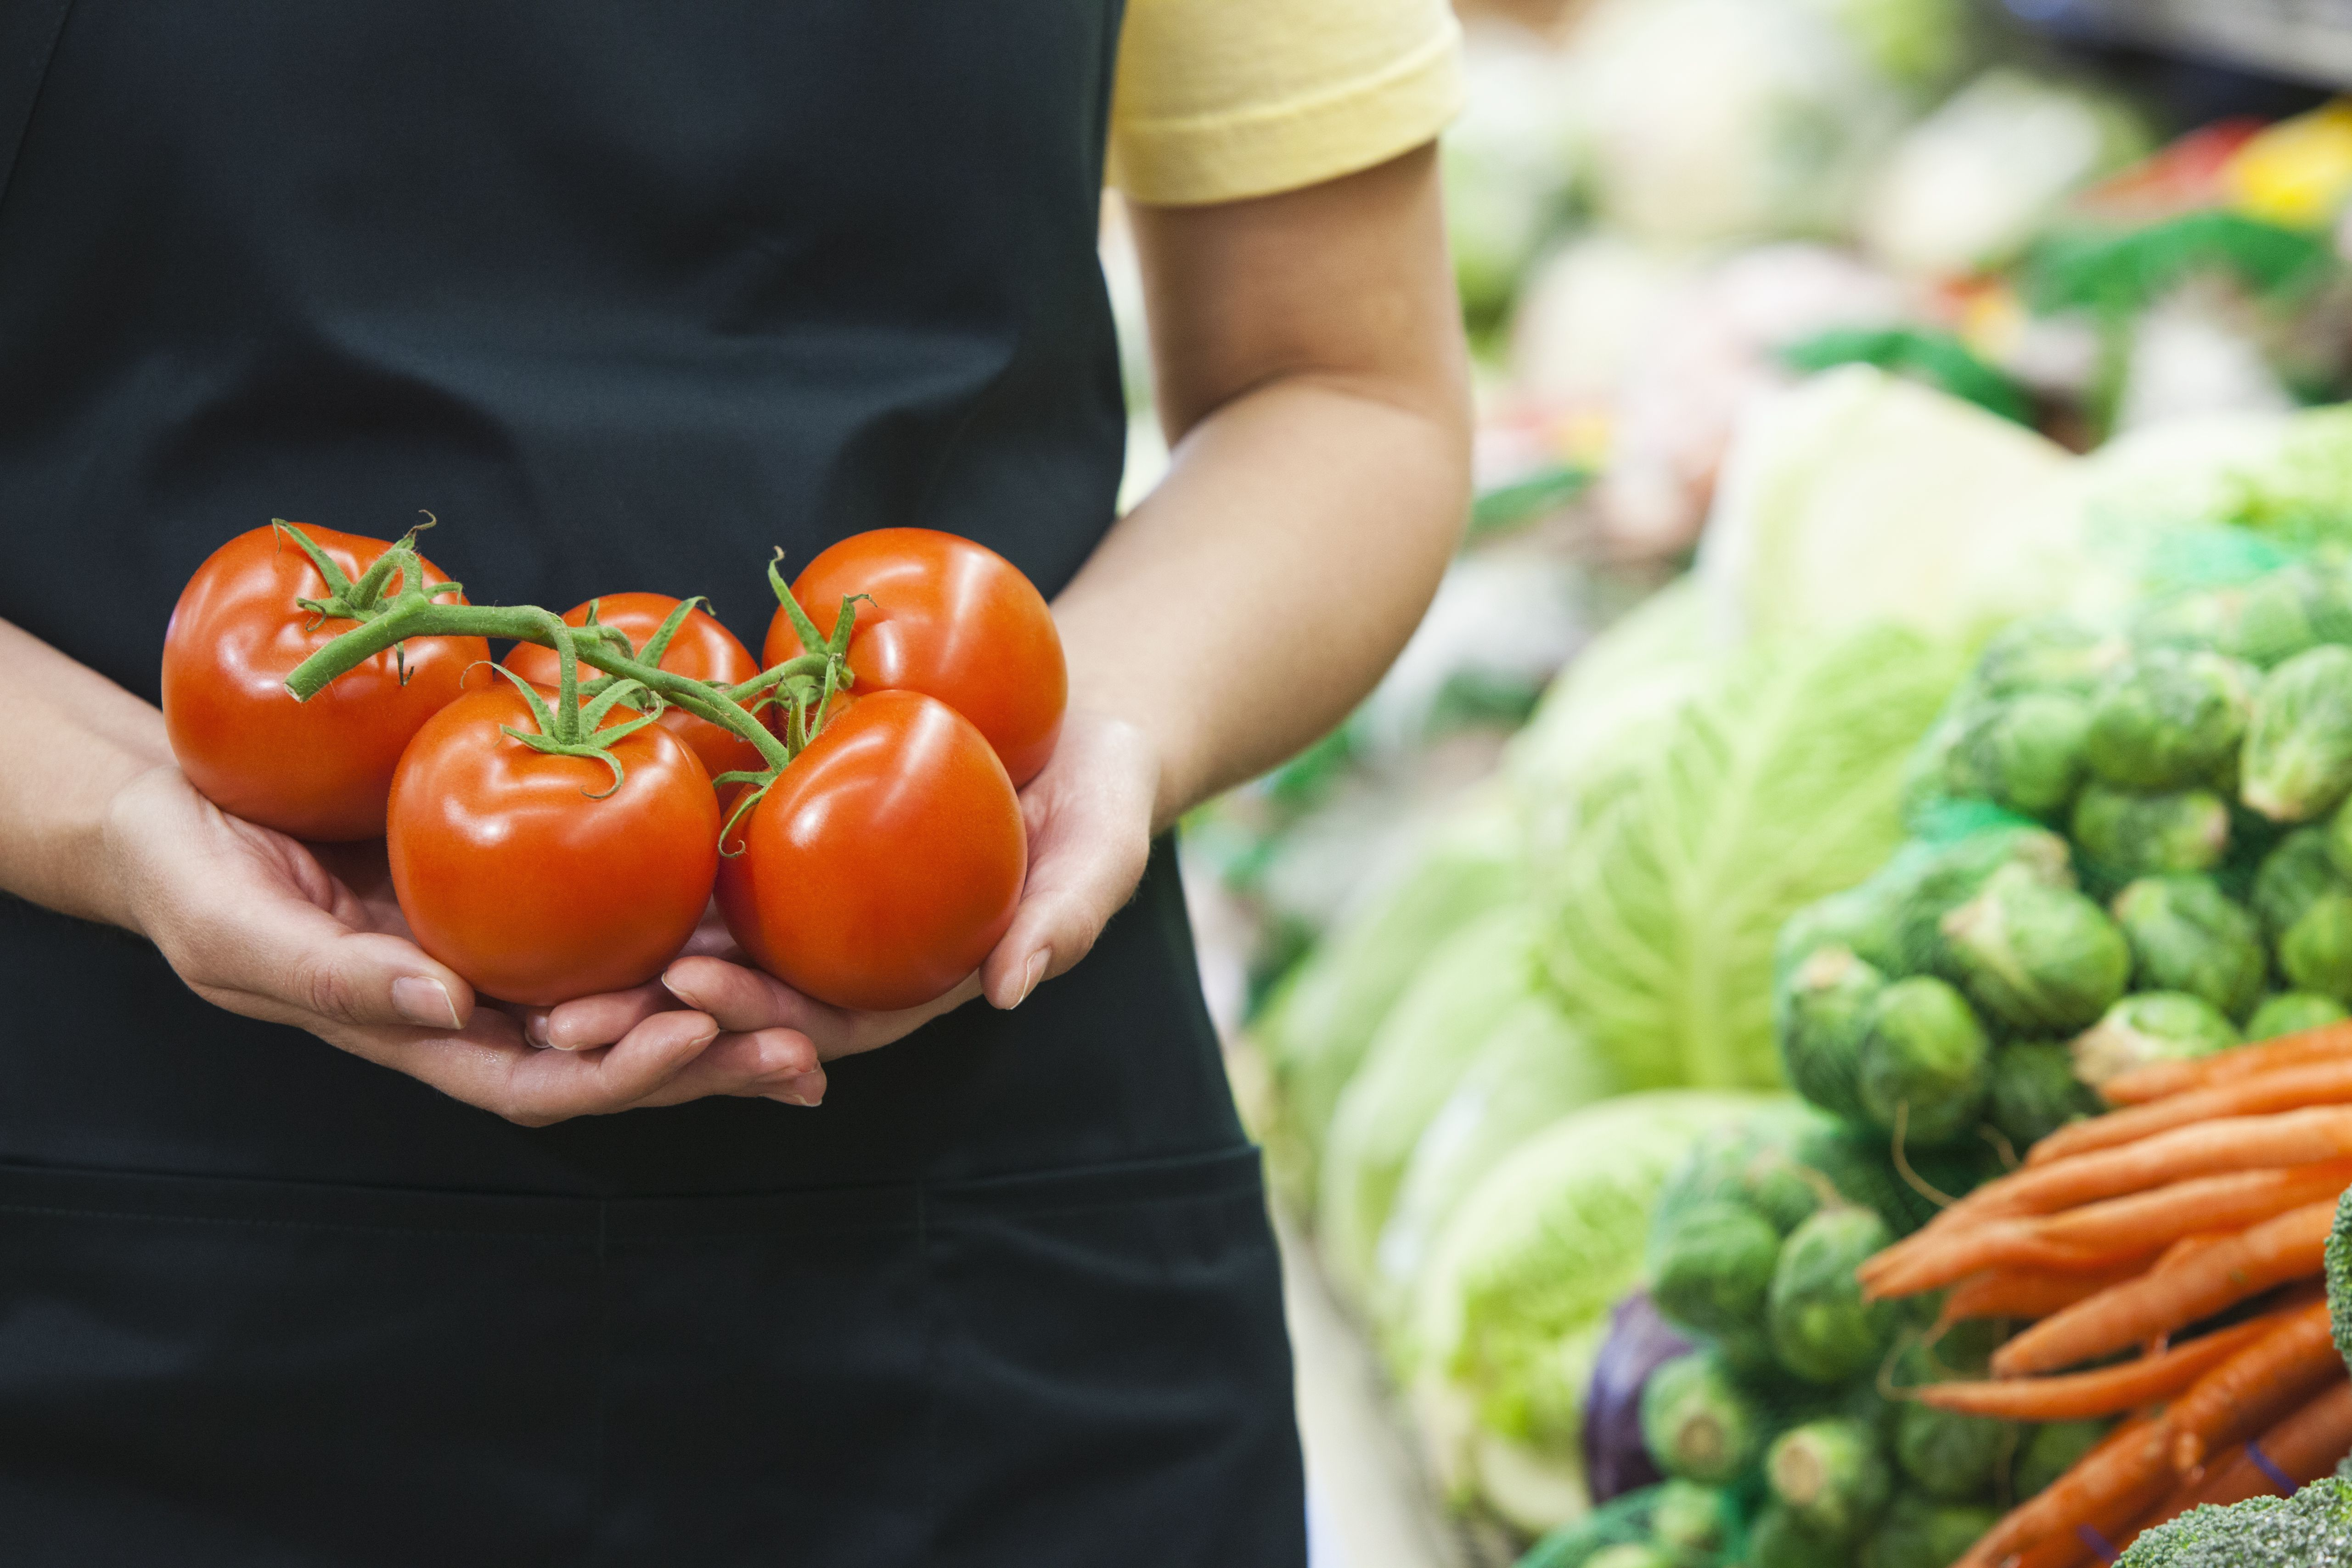 Caucasian worker holding tomatoes in grocery store